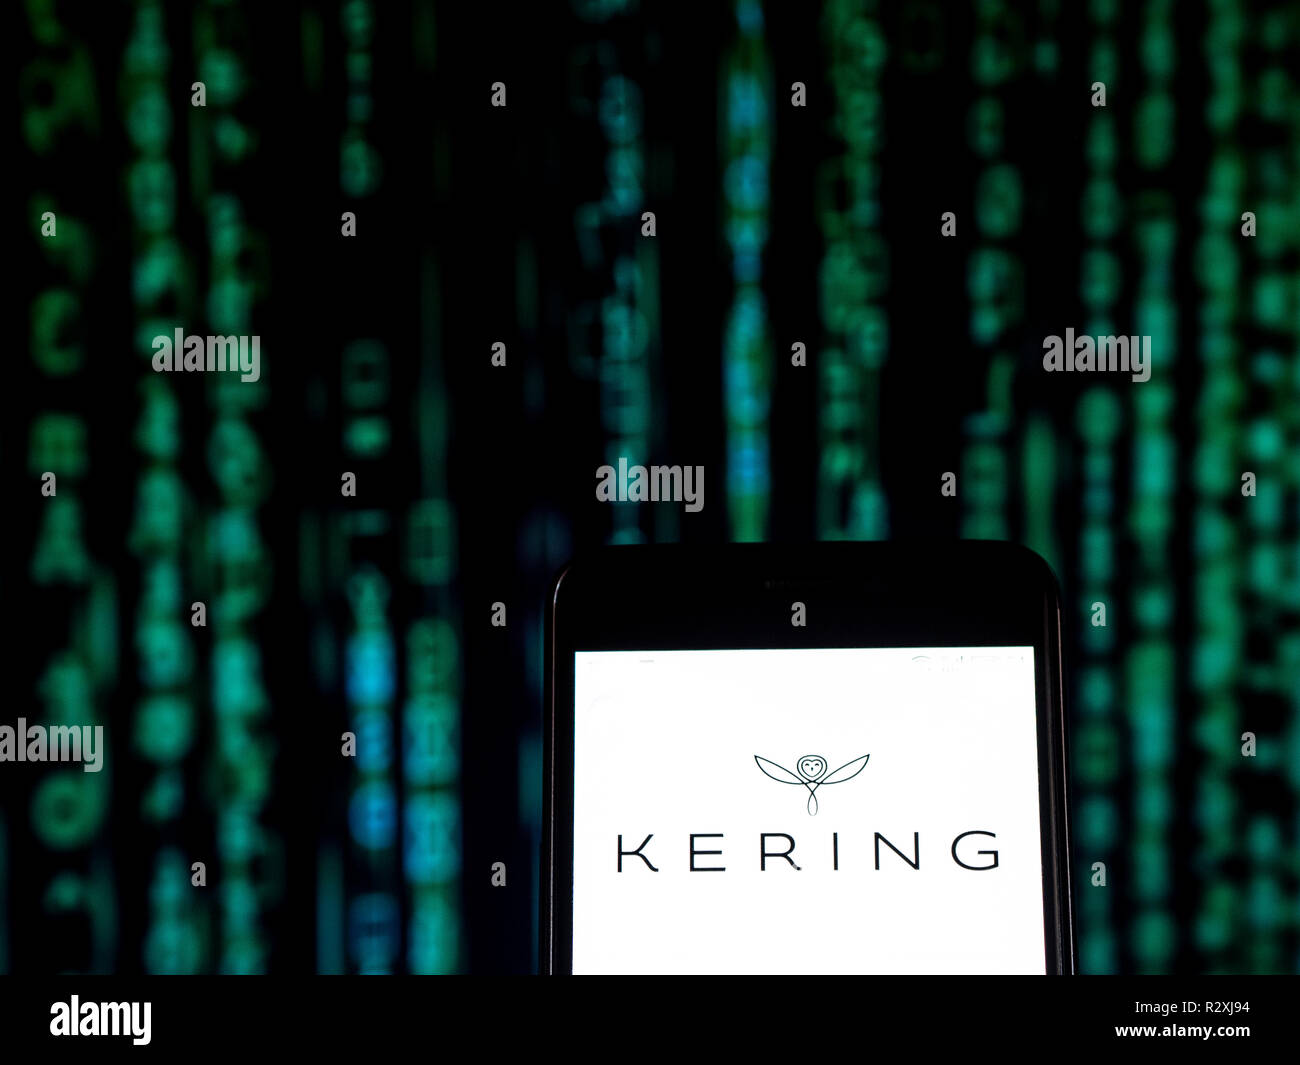 7f0076164b5 Kering Luxury goods company logo seen displayed on a smart phone. Kering  S.A. is an